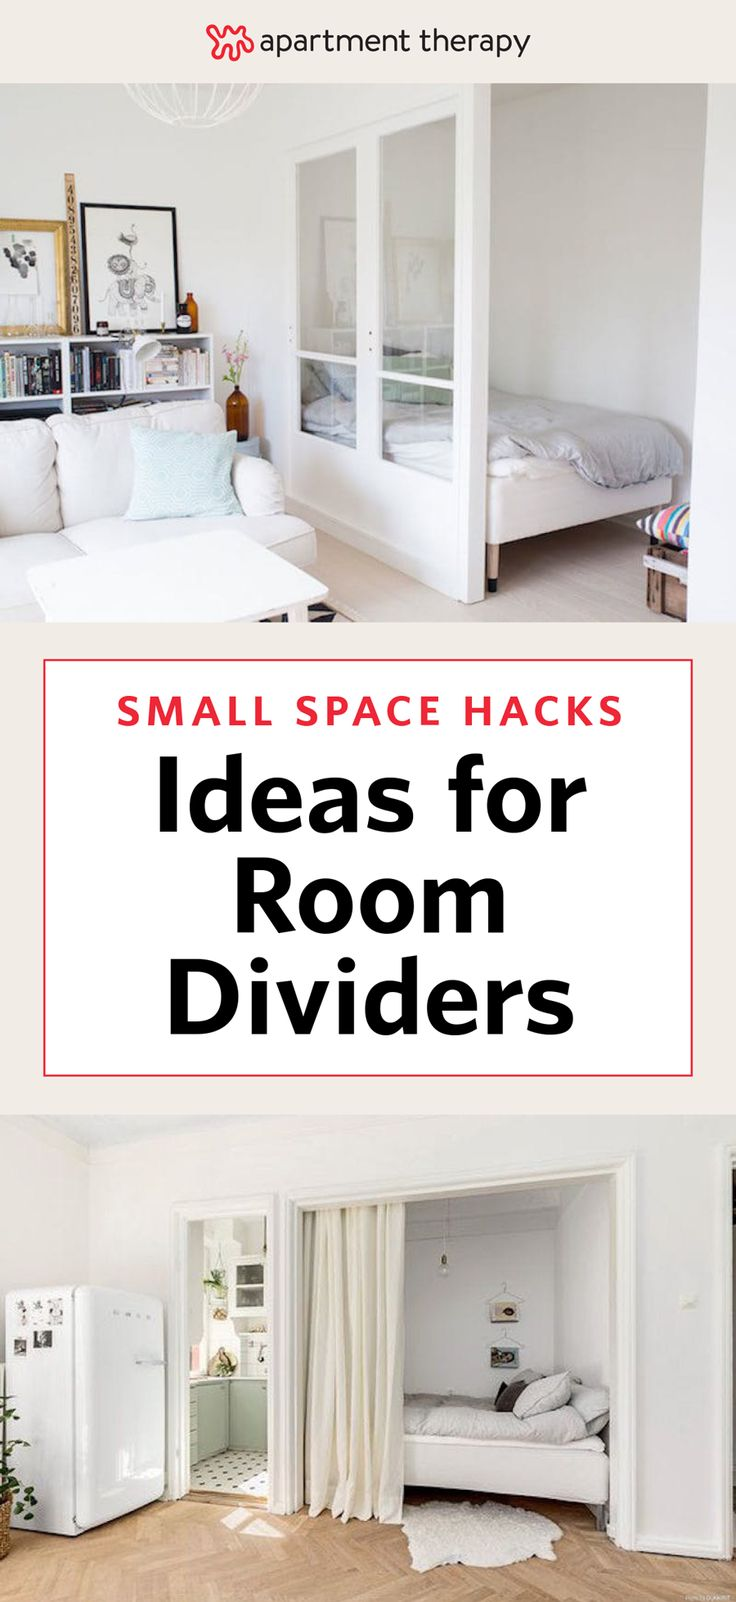 "The challenge: Create a ""bedroom"" (well, at least a bed nook) in an open-layout studio apartment. Our solution: Choose visual dividers that separate the space, but that don't block sunlight or cut up the square footage of an already tiny home. Presto—your single room will suddenly feel like two (or more.) Here are 11 simple and smart ideas to inspire small-space dwellers:"